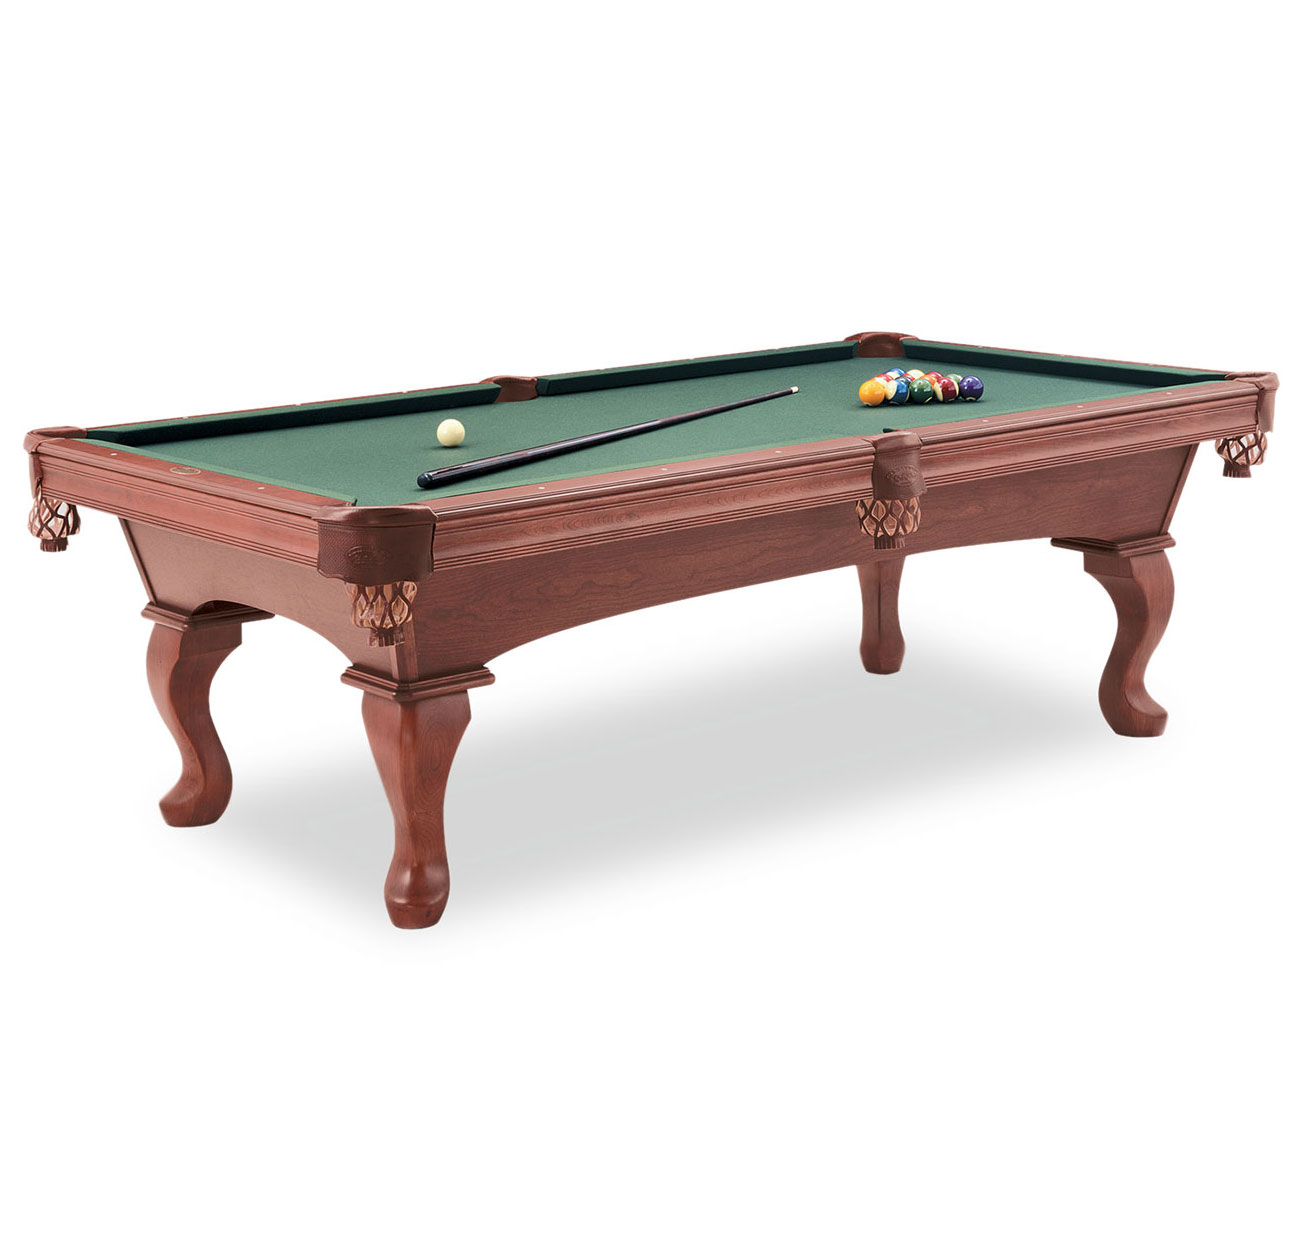 Olhausen eclipse pool table shop olhausen pool tables - Photos of pool tables ...